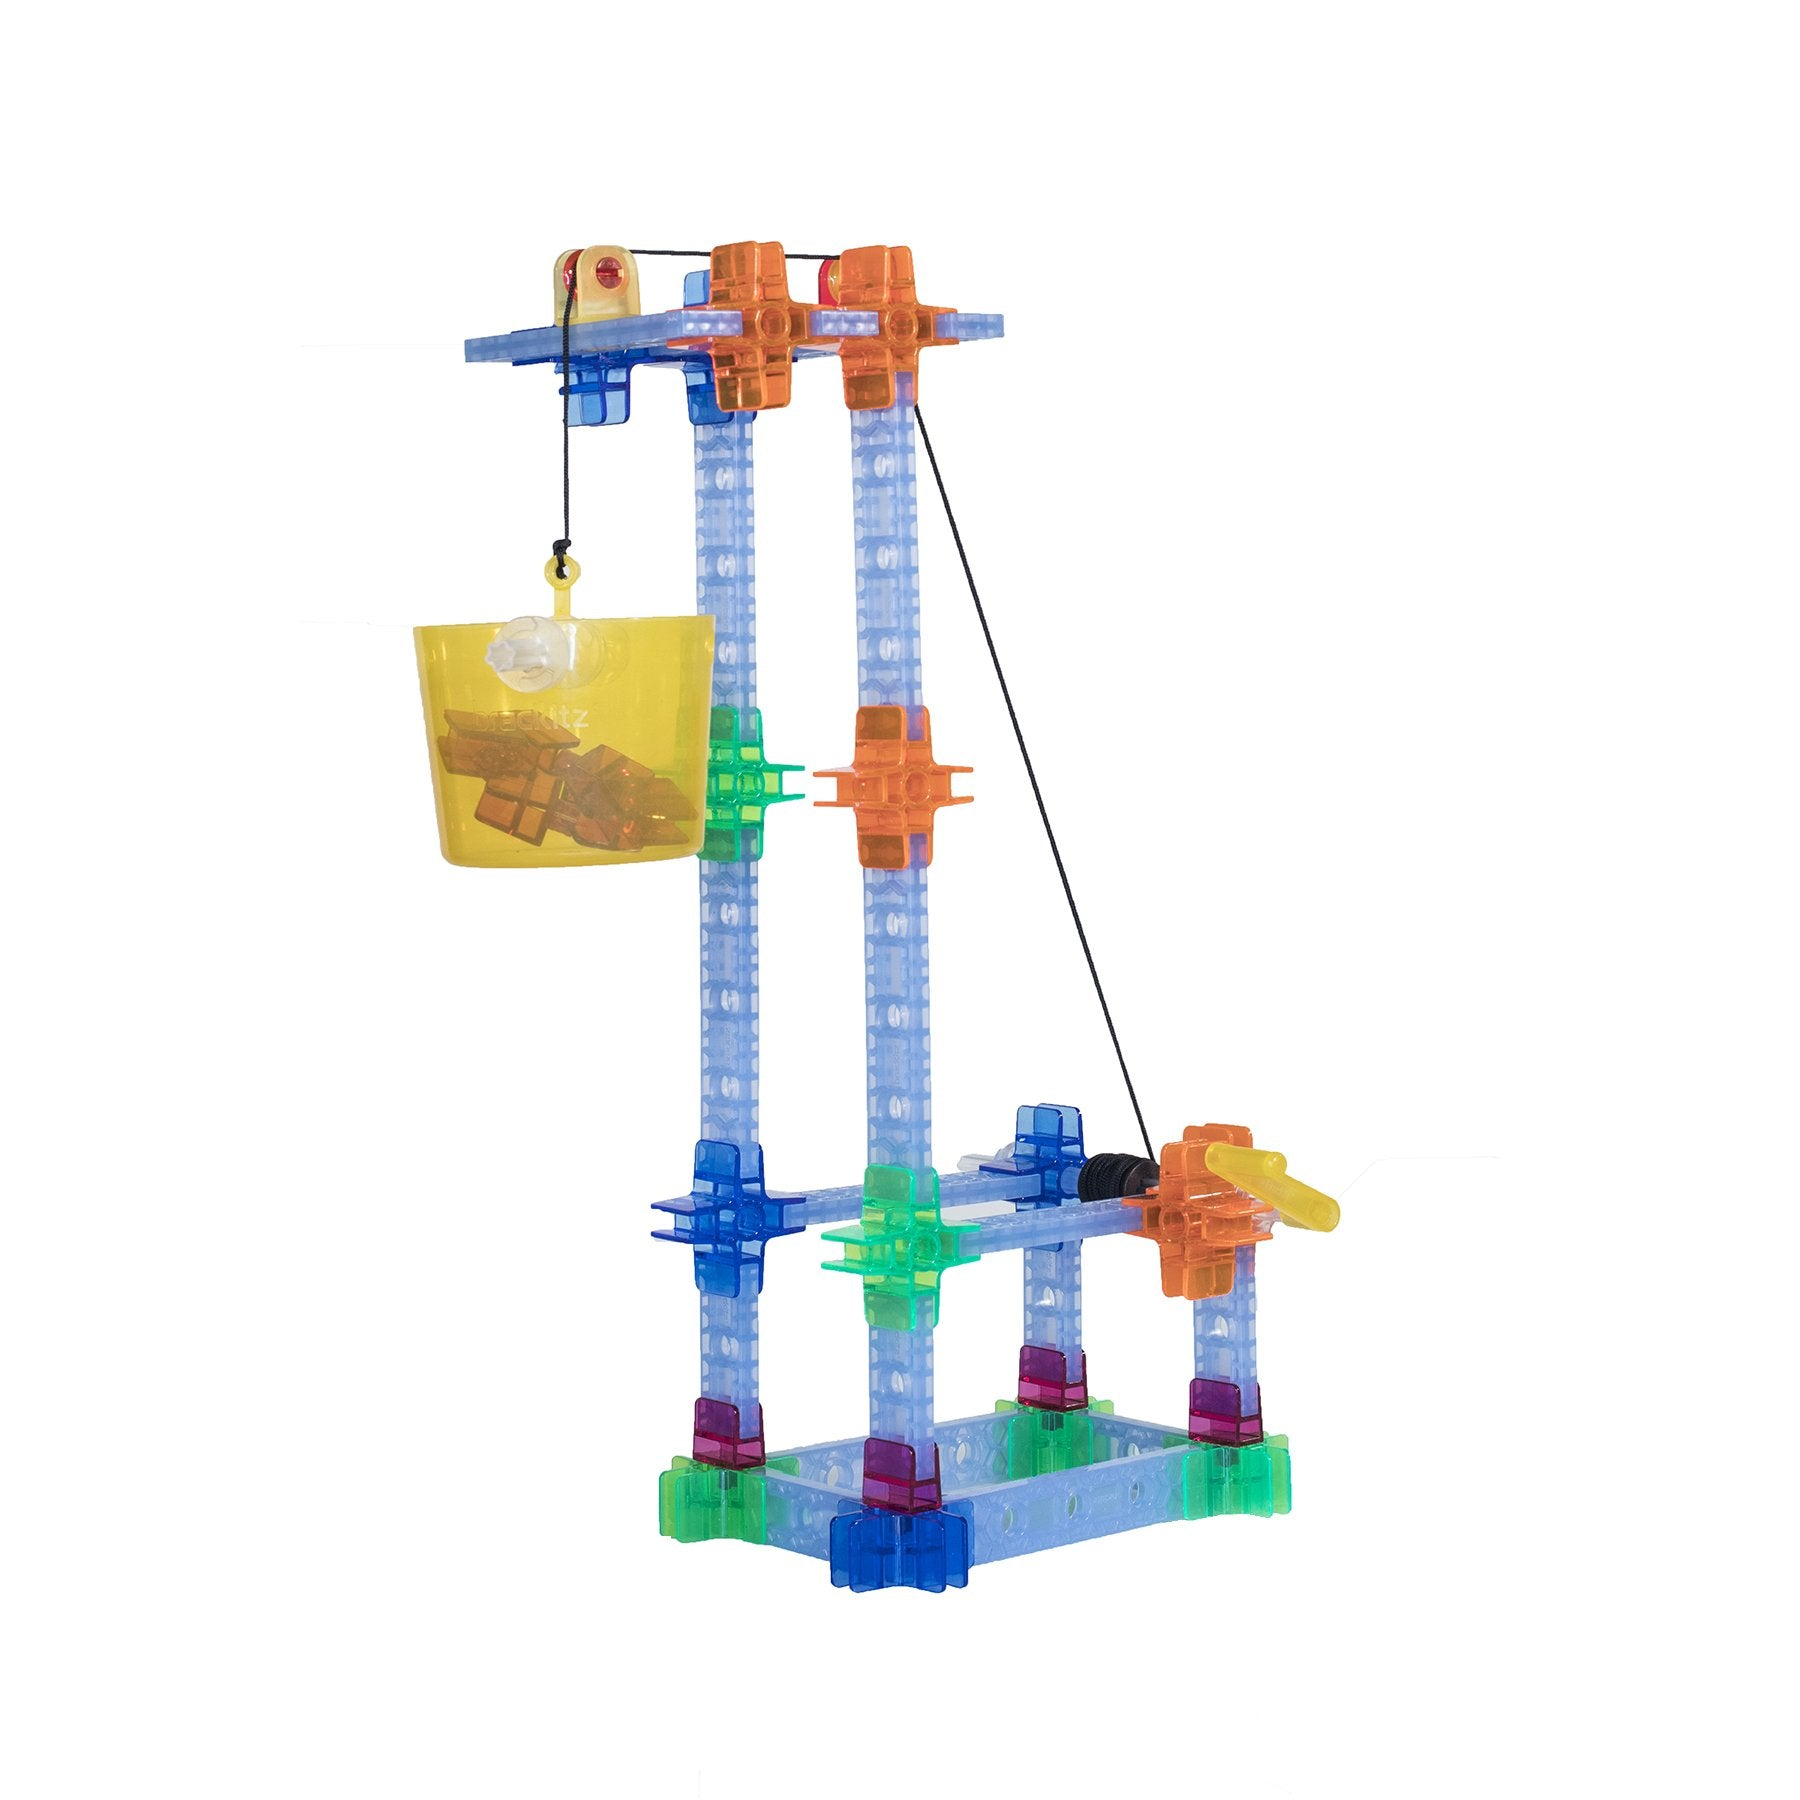 Brakitz Pulleys - 77 Piece Set